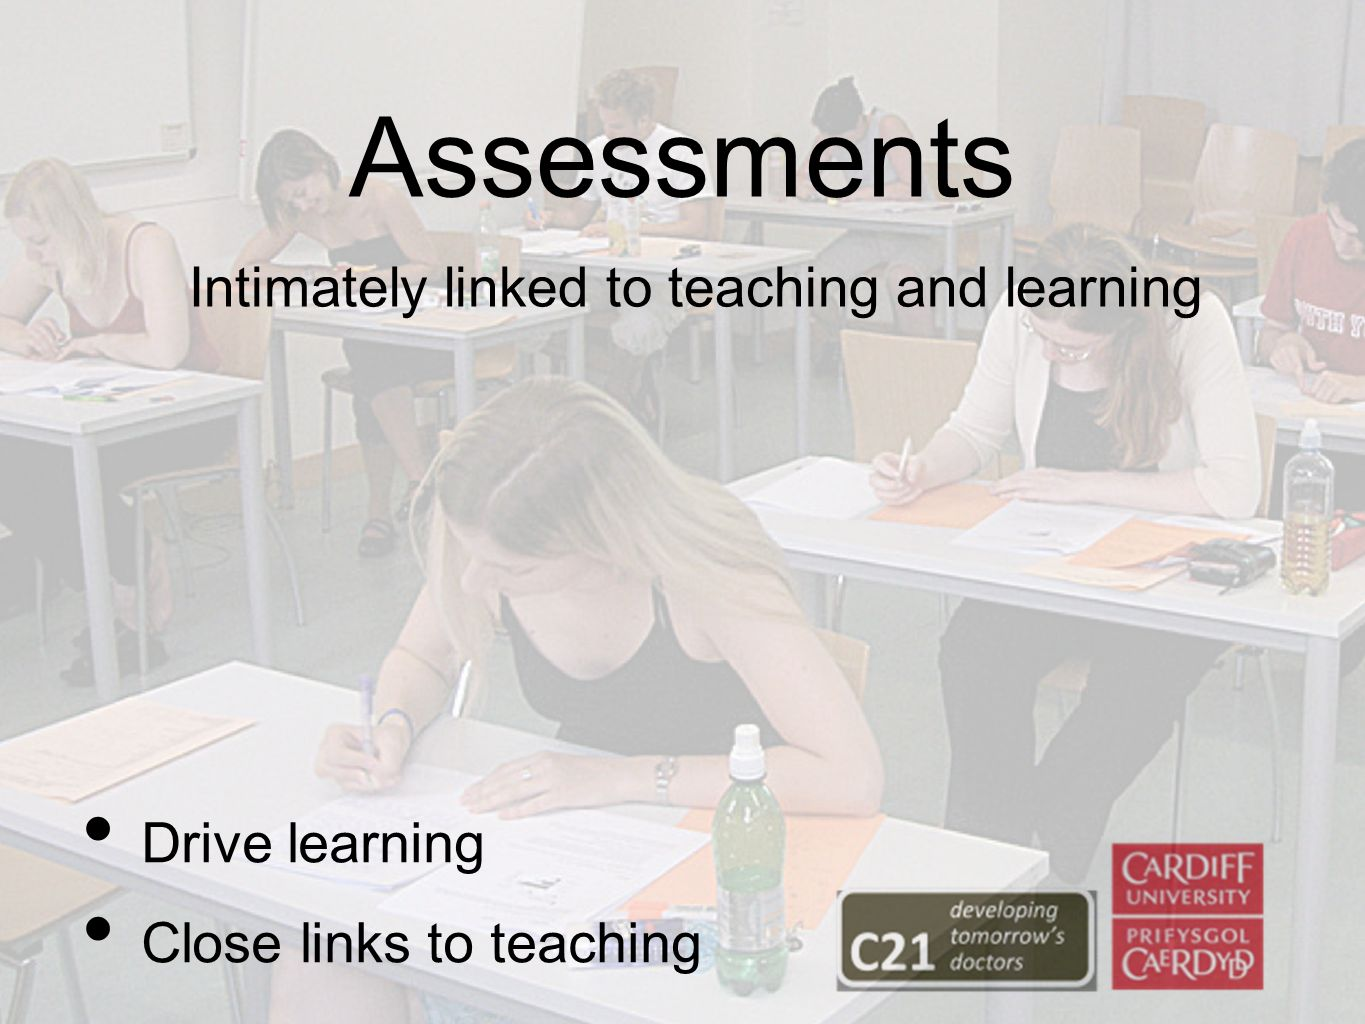 Assessments Drive learning Close links to teaching Intimately linked to teaching and learning